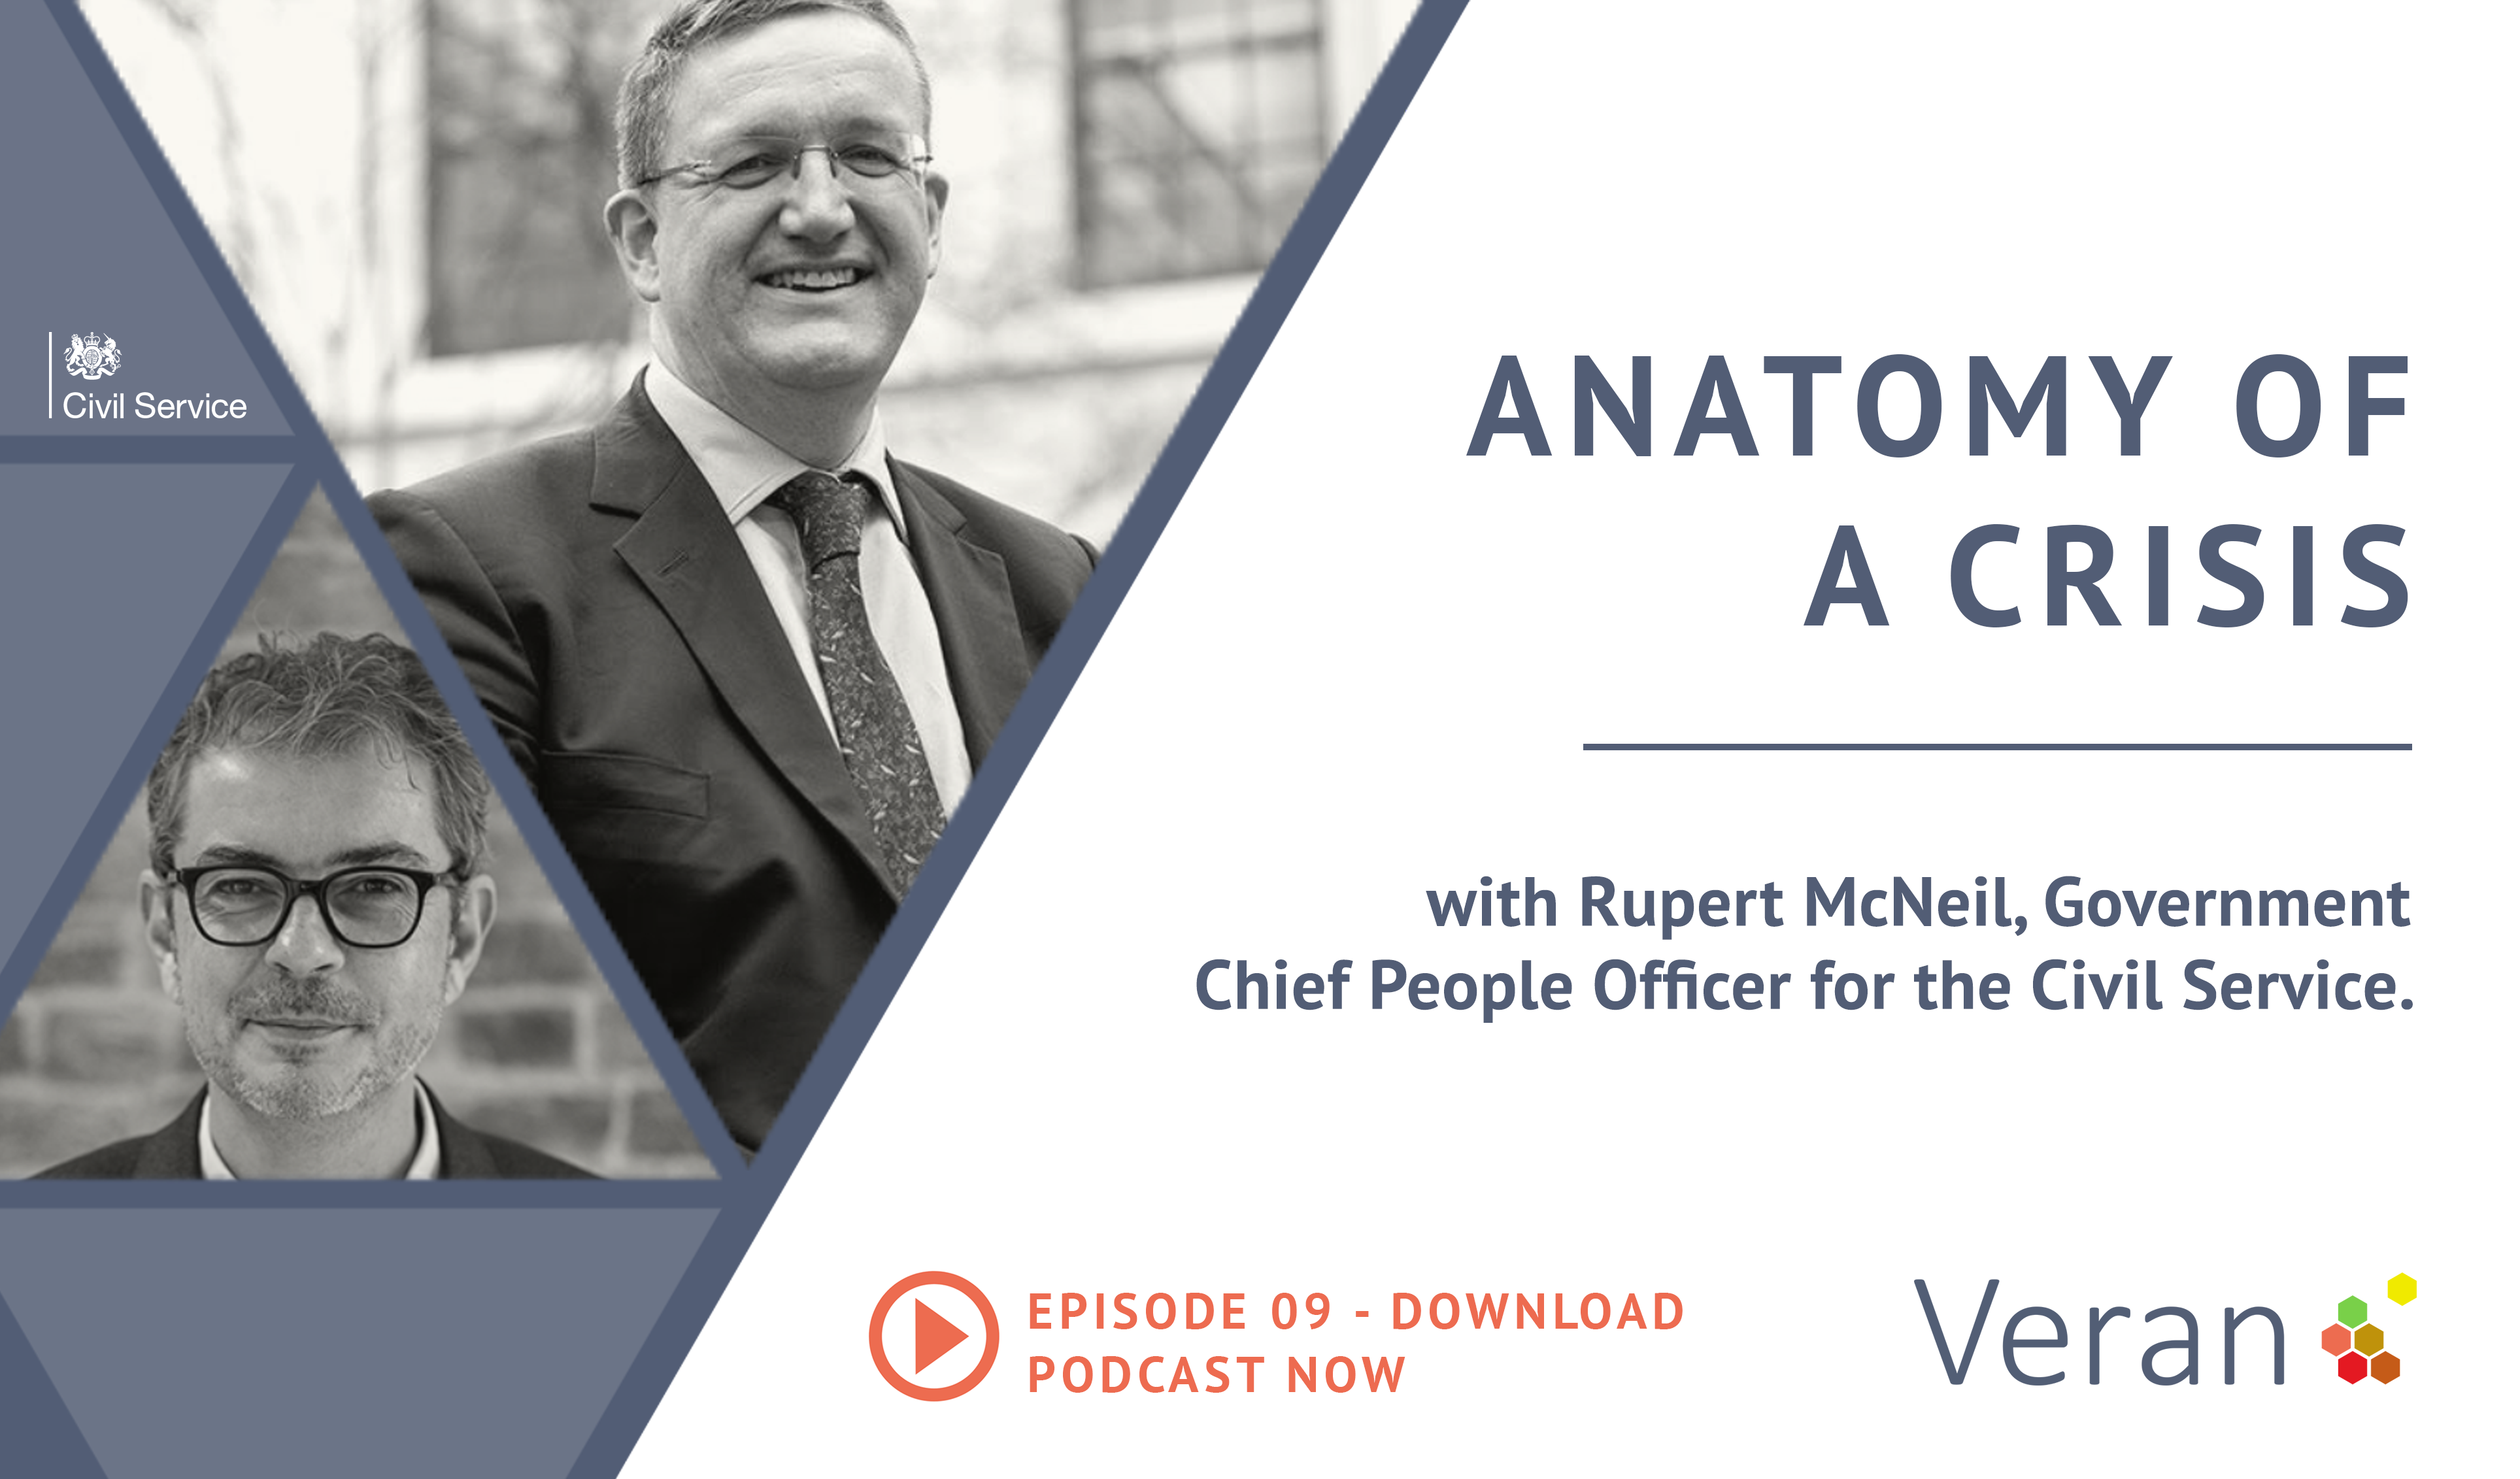 Anatomy of a Crisis Episode 09 with Rupert McNeil, Government Chief People Officer for the Civil Ser